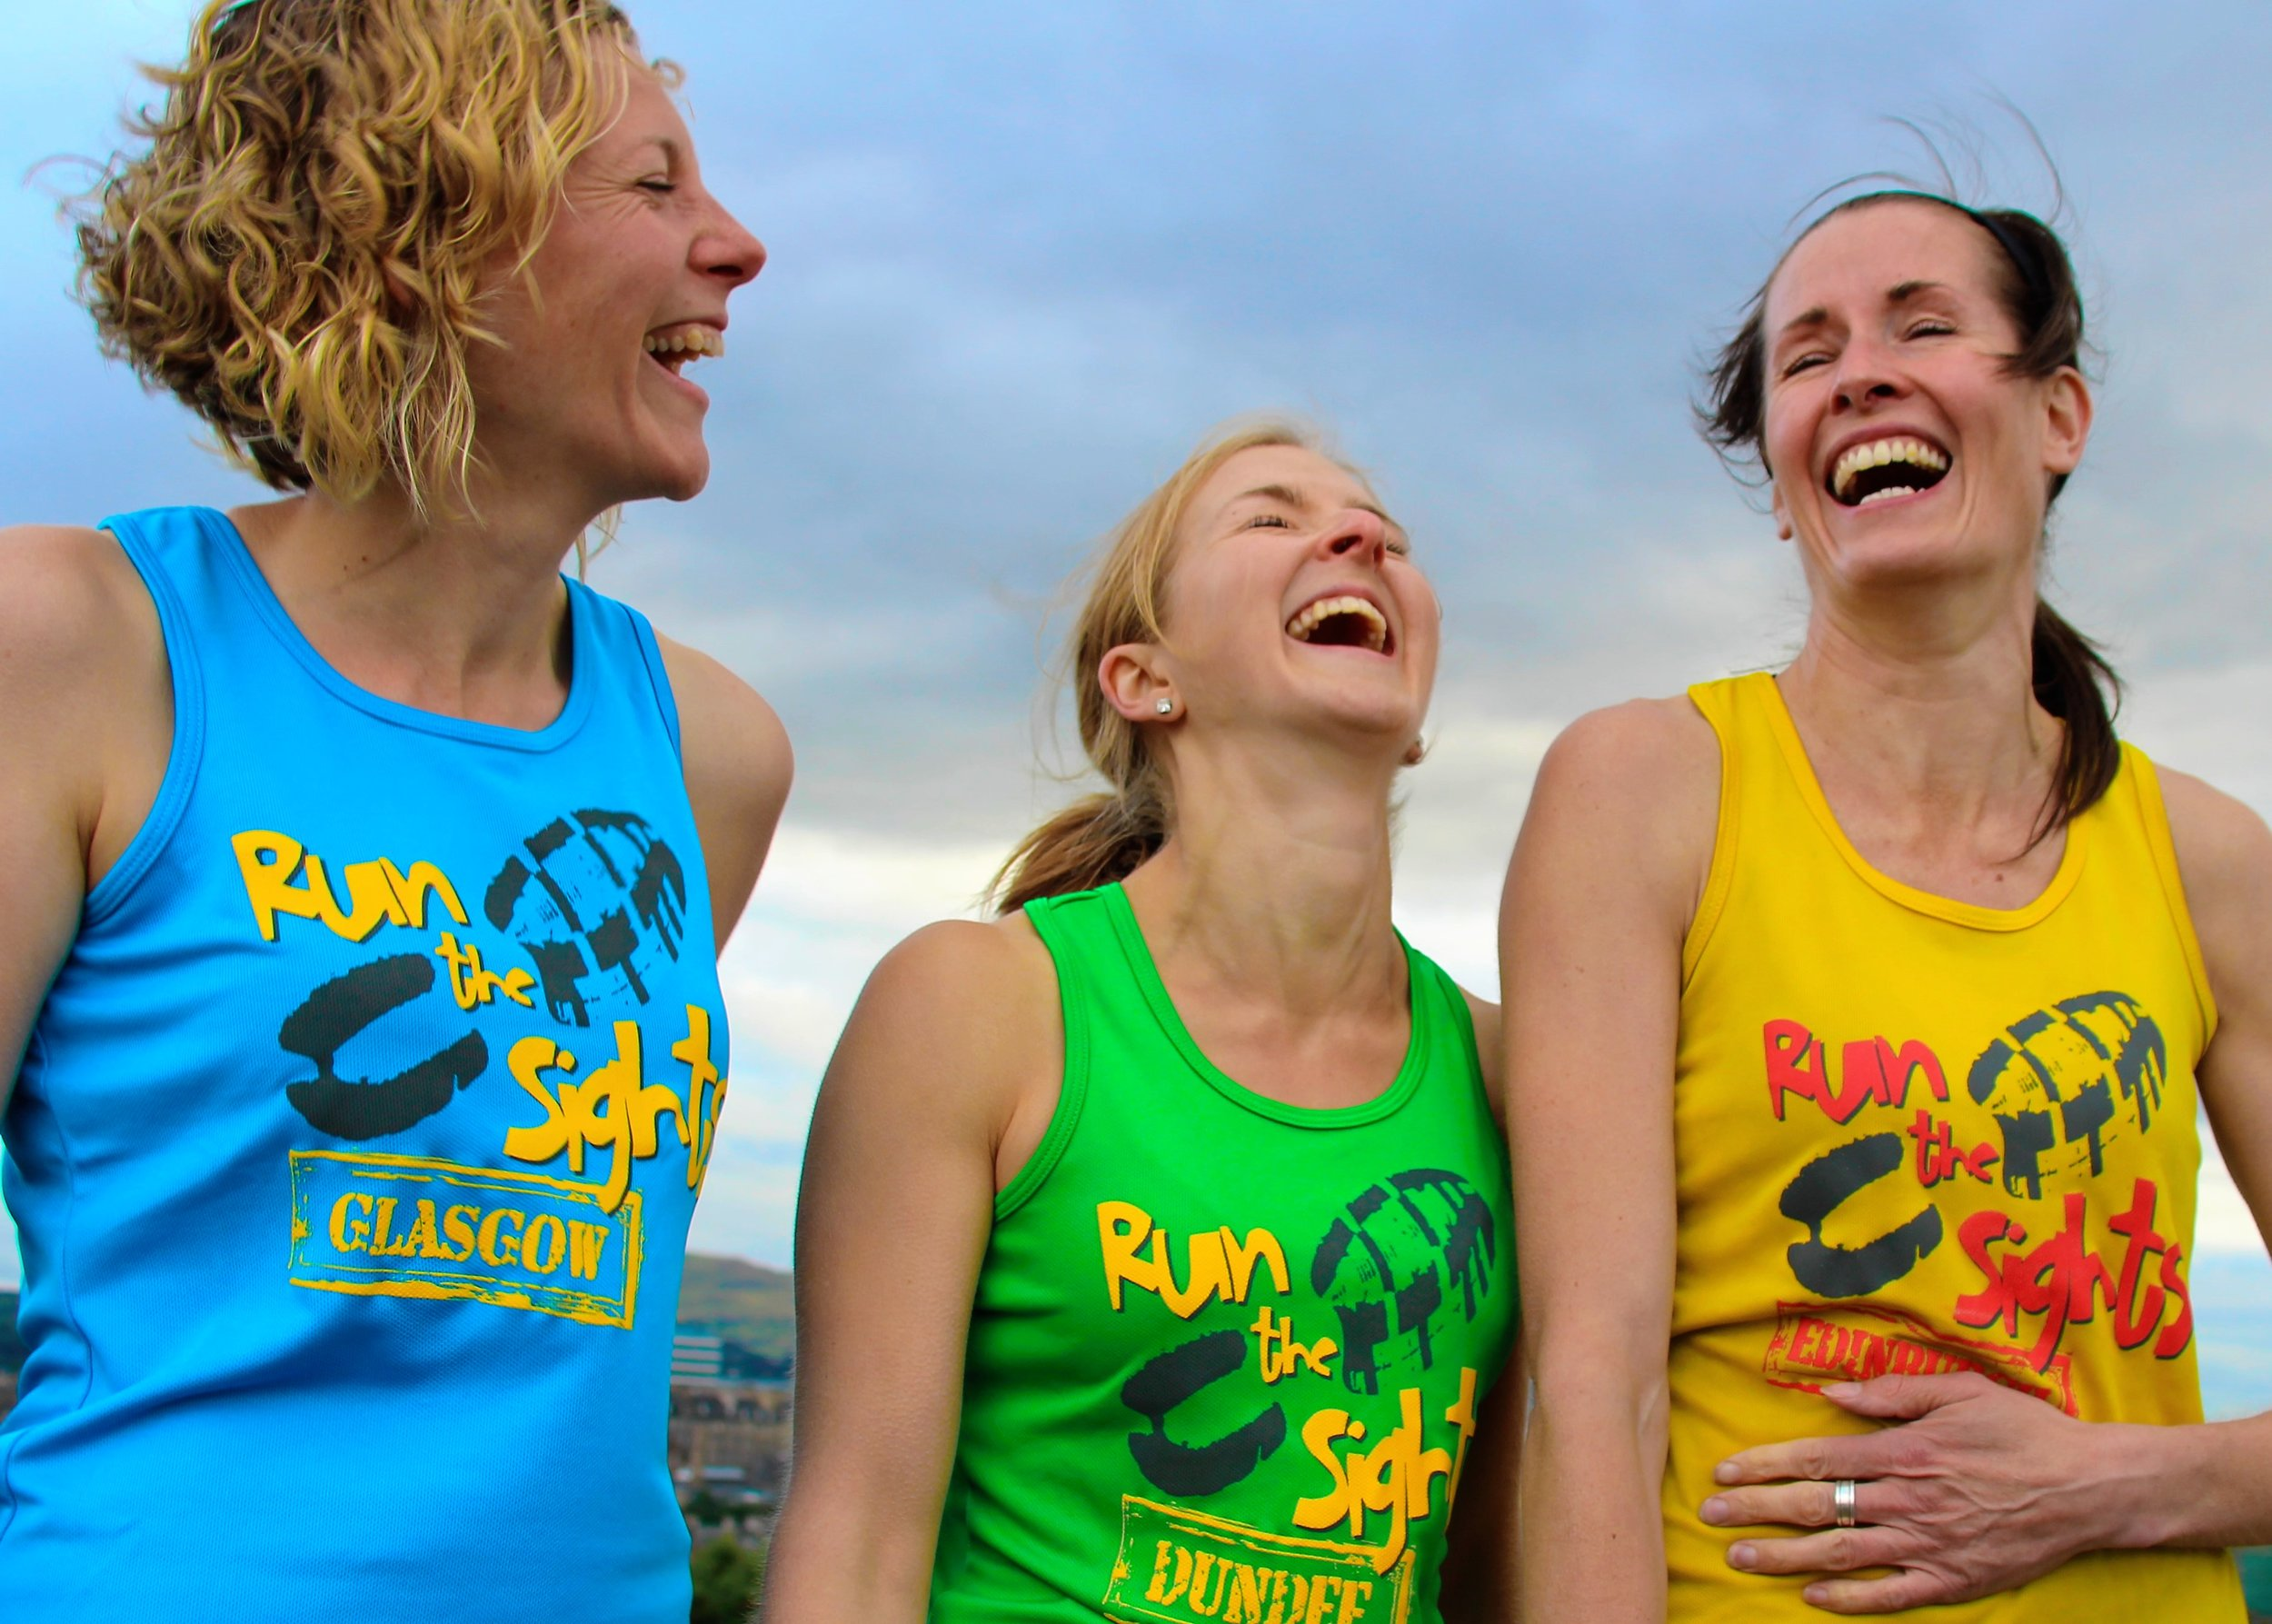 Running is a journey of laughter, friendship and adventure